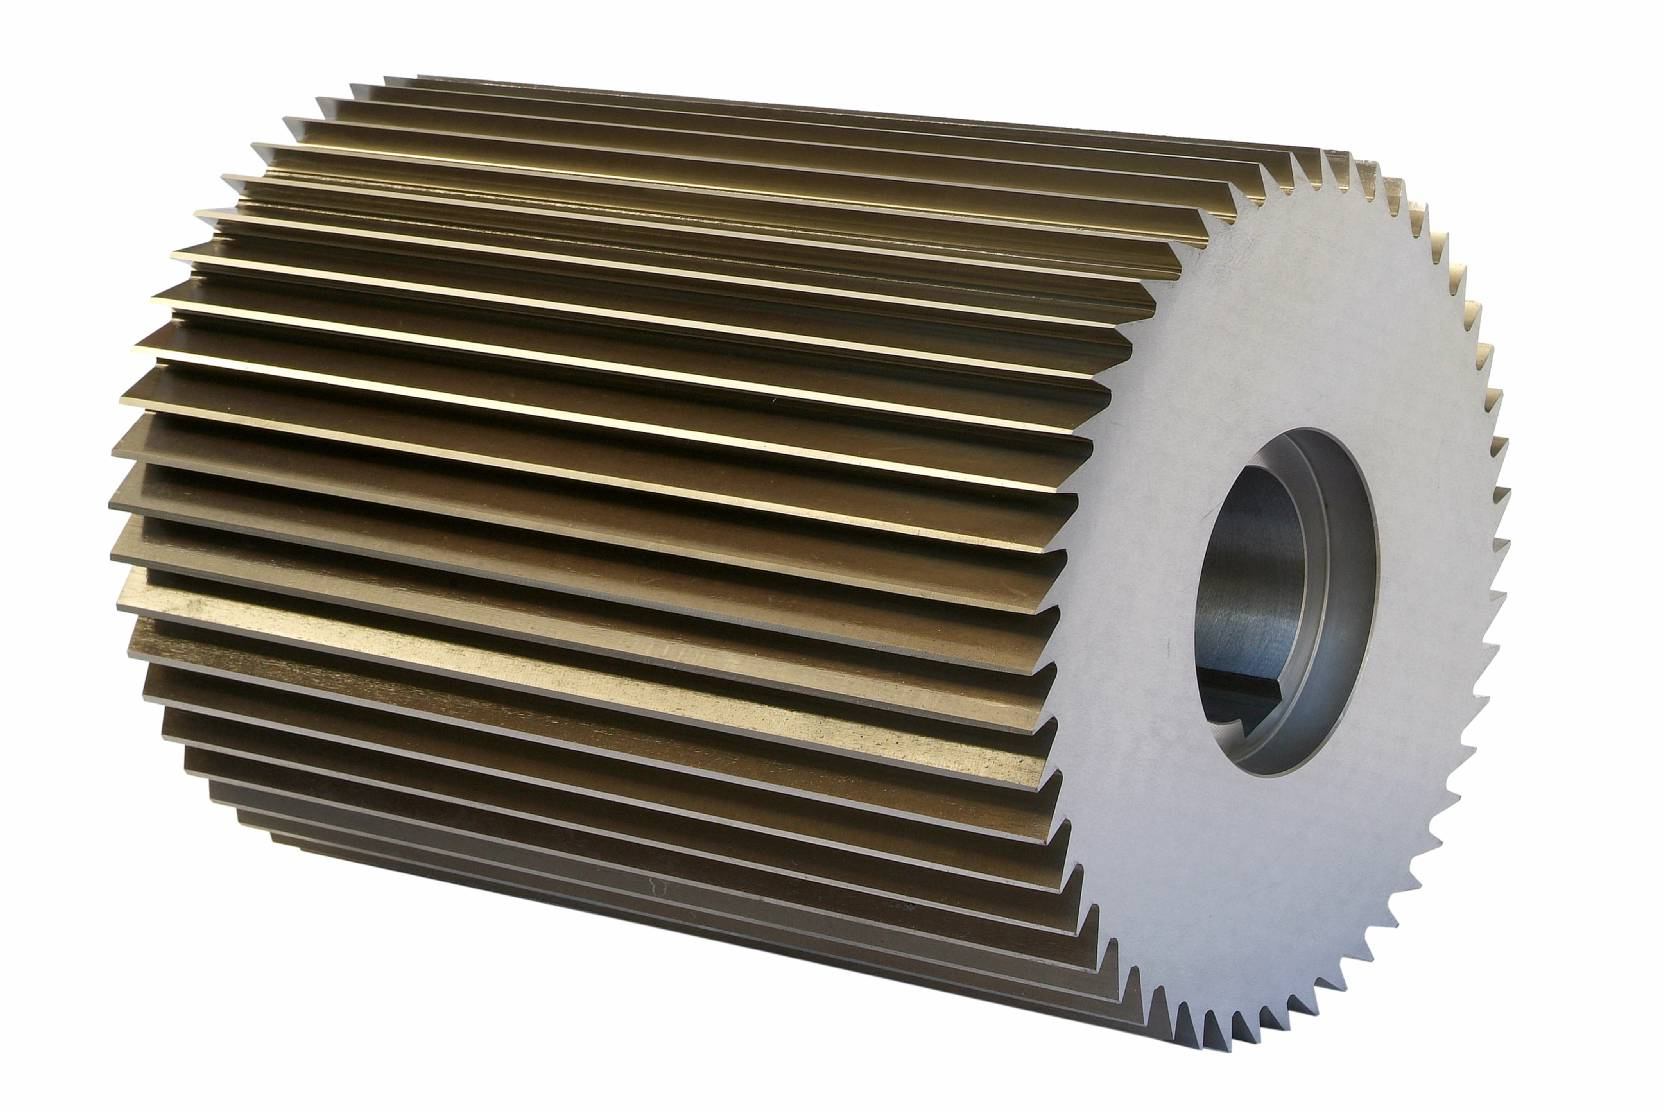 Integral rotor Cuttes